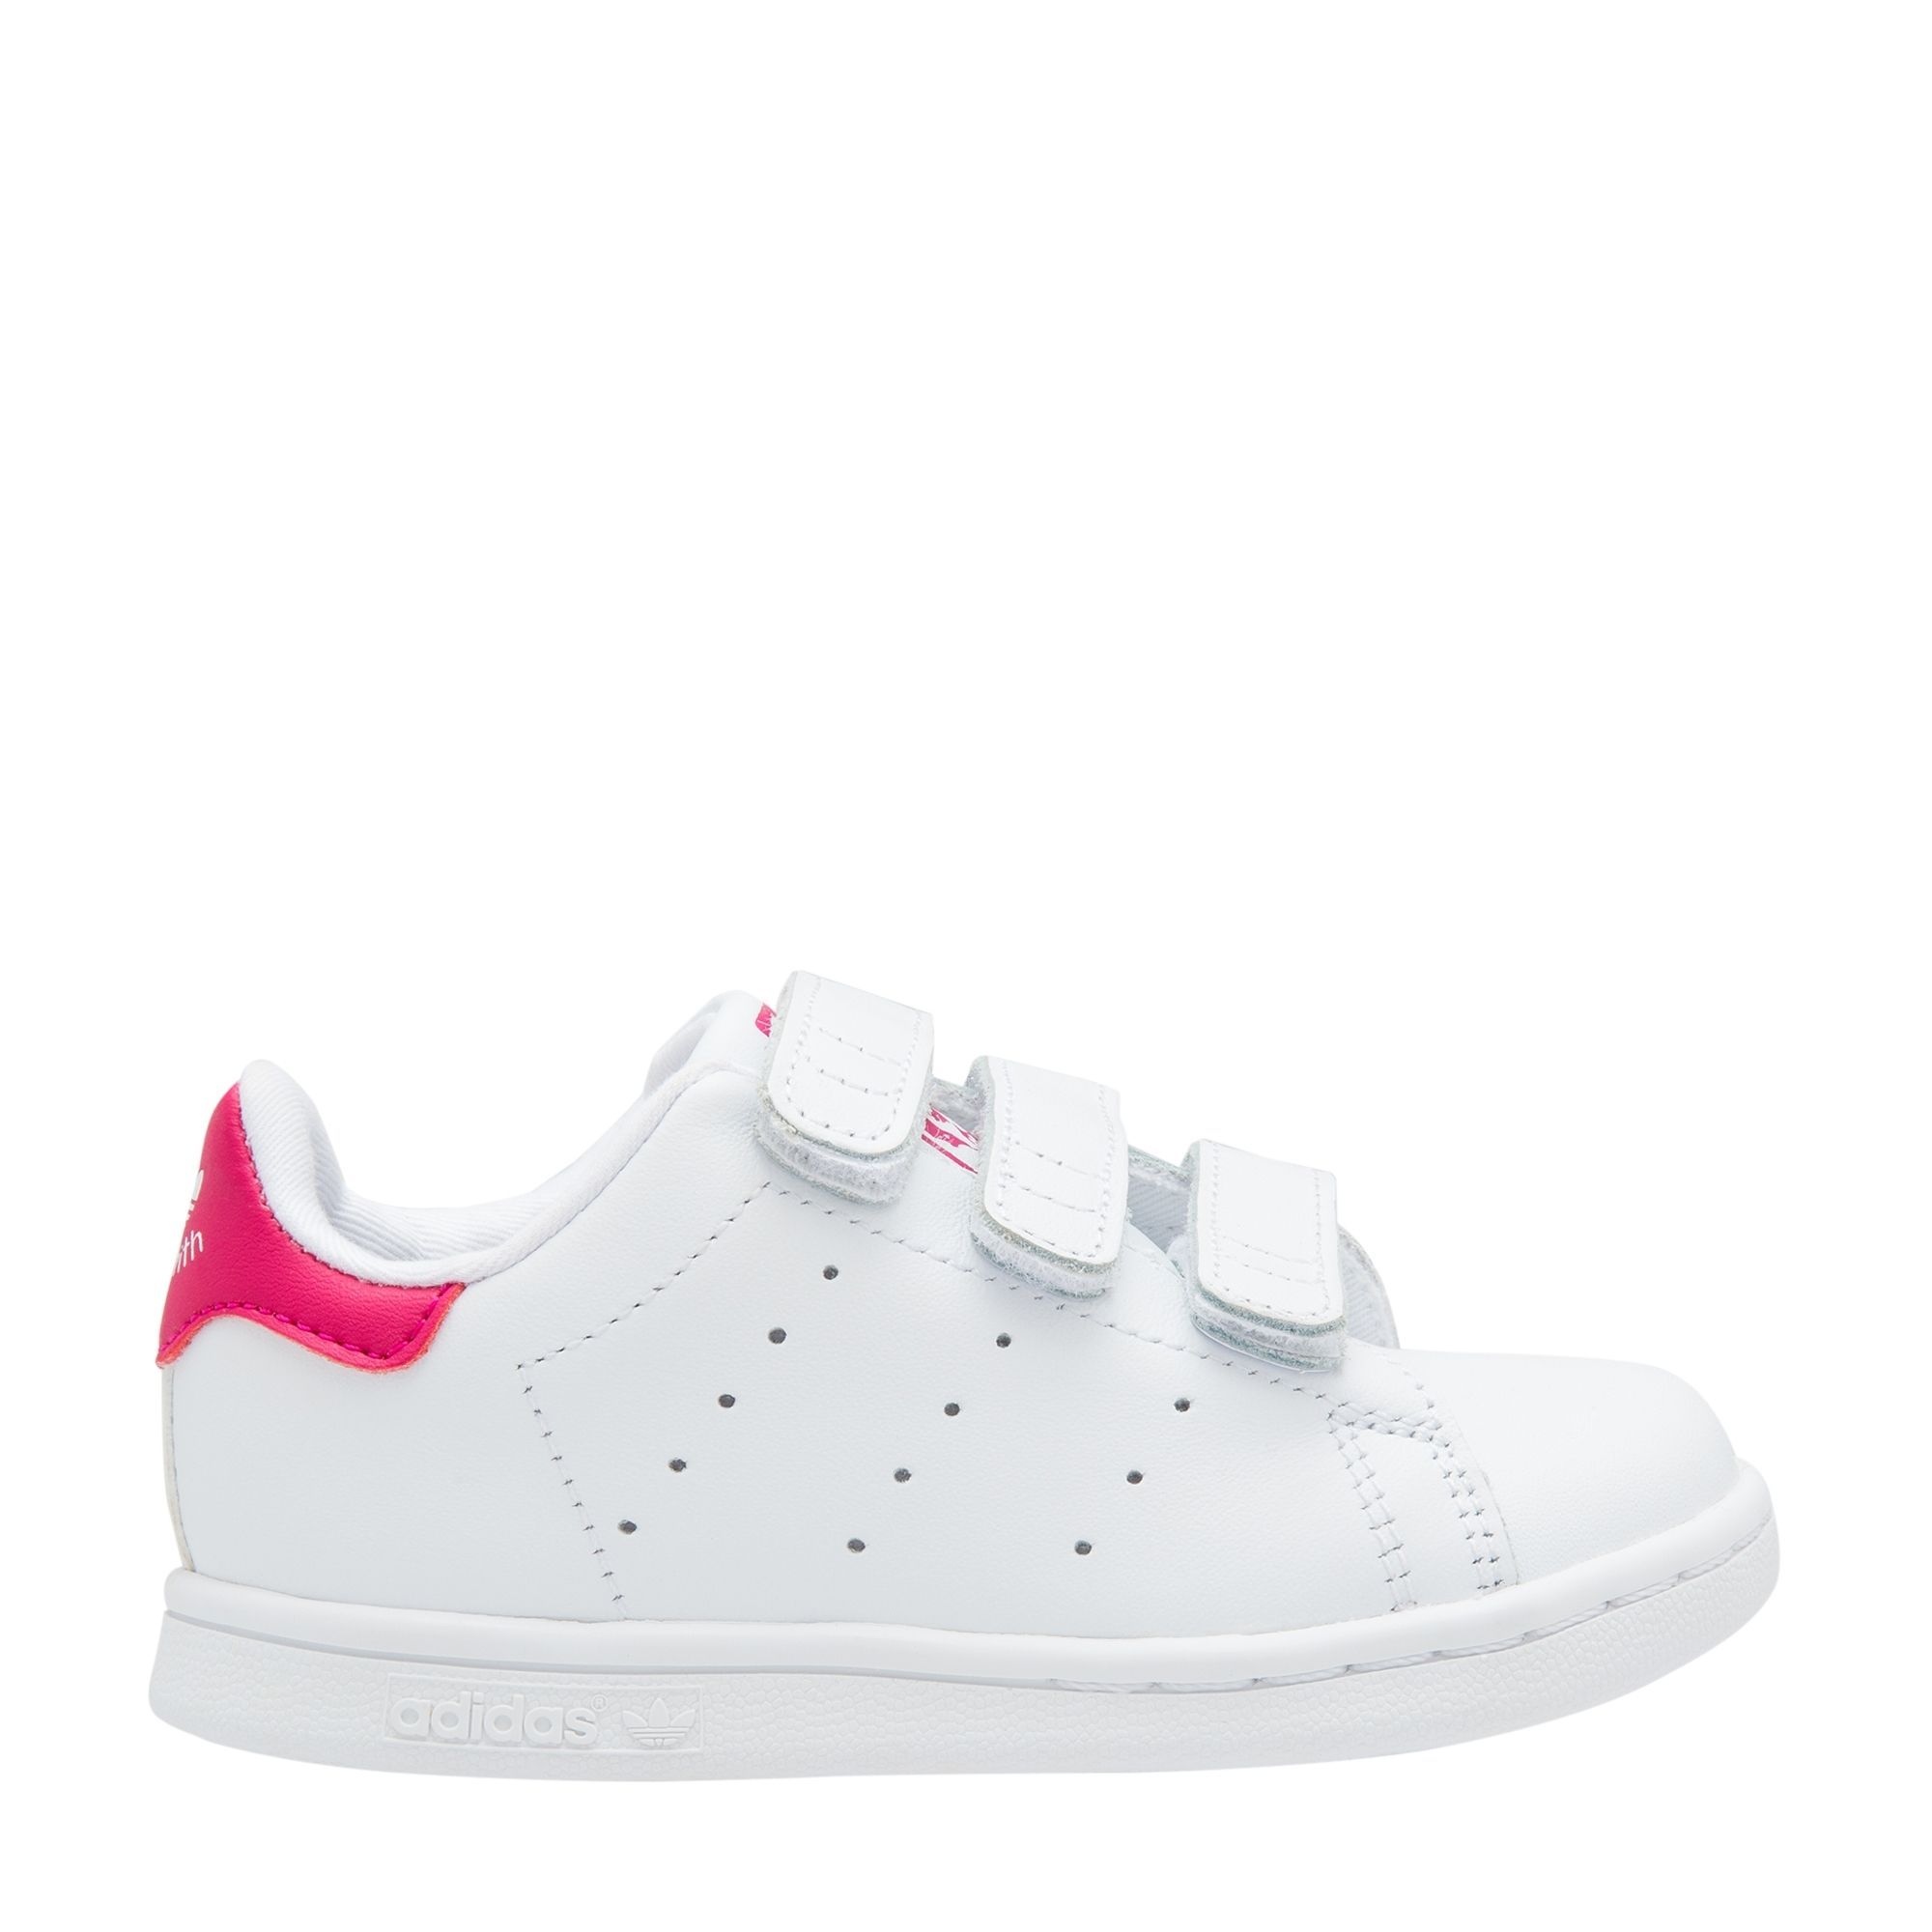 Adidas Superstar crib shoes for Baby - White in UAE ...